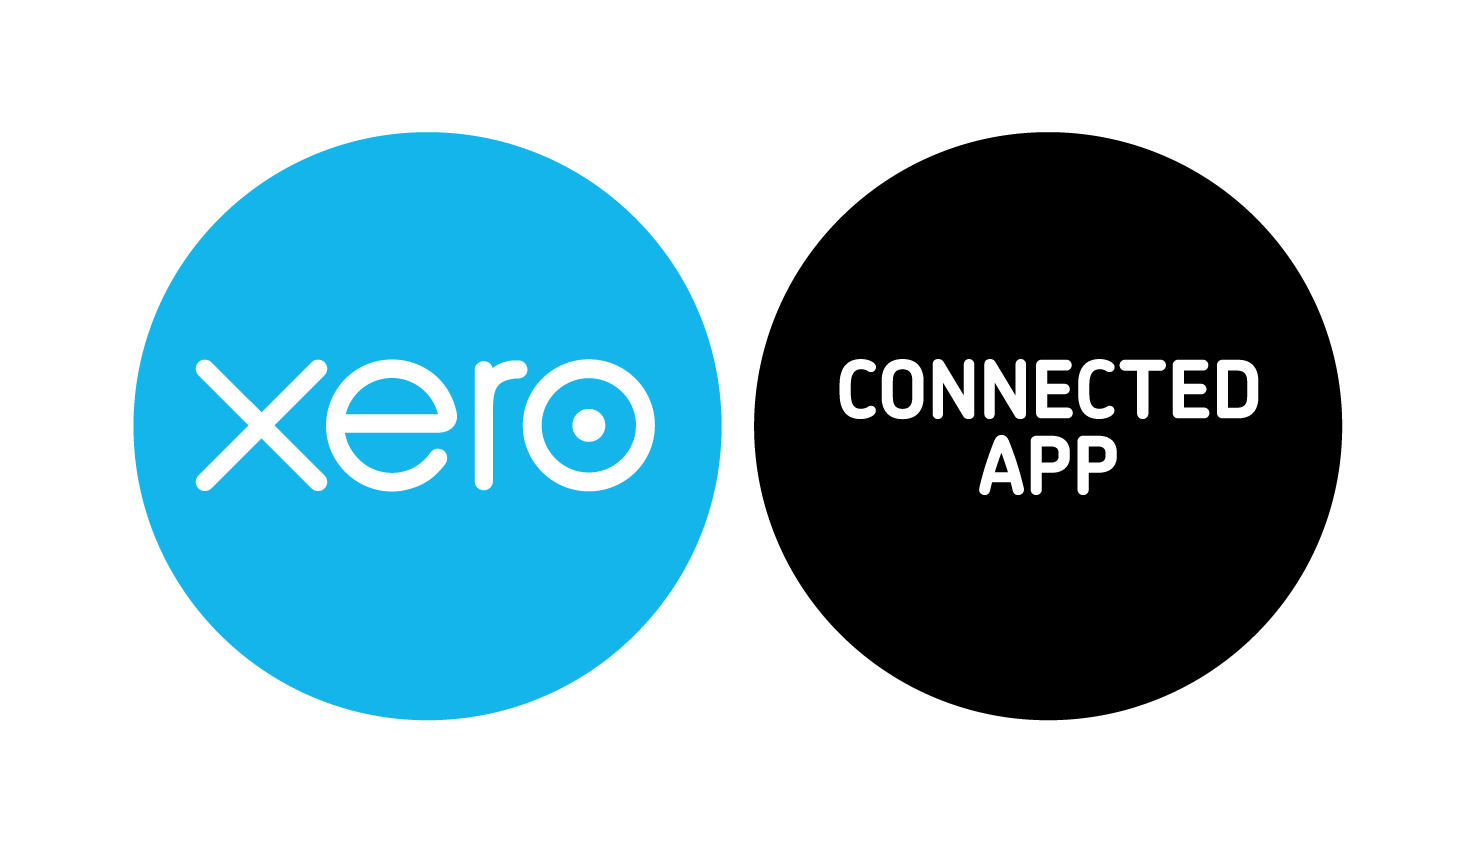 Xero connected app badge